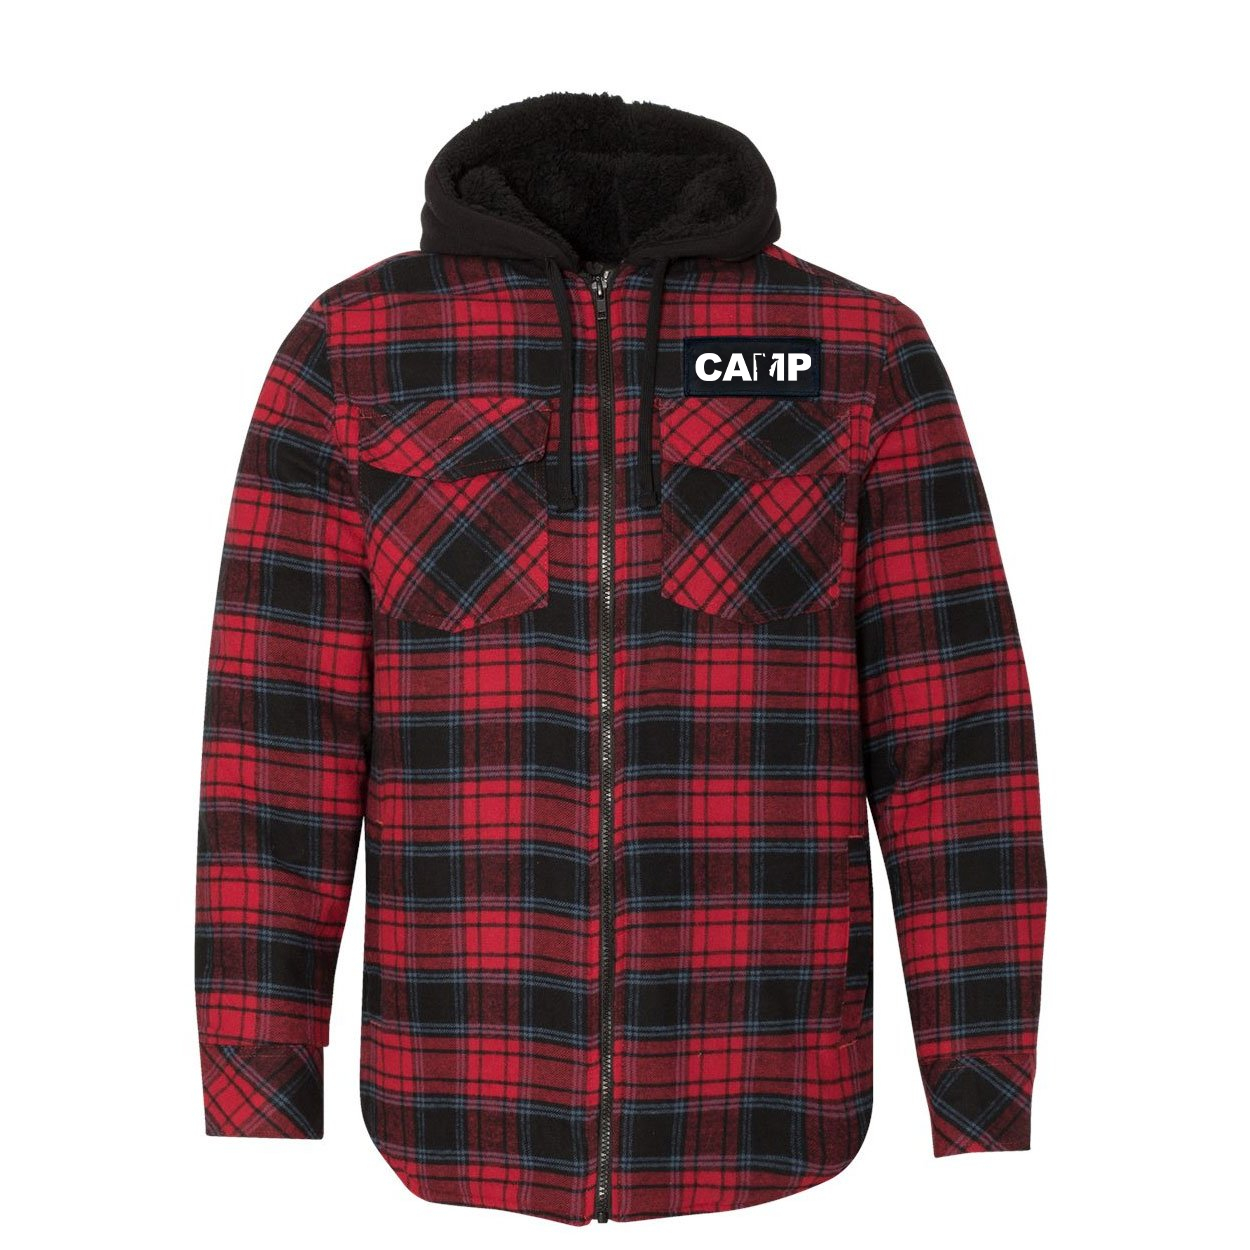 Camp Minnesota Classic Unisex Full Zip Woven Patch Hooded Flannel Jacket Red/Black Buffalo (White Logo)